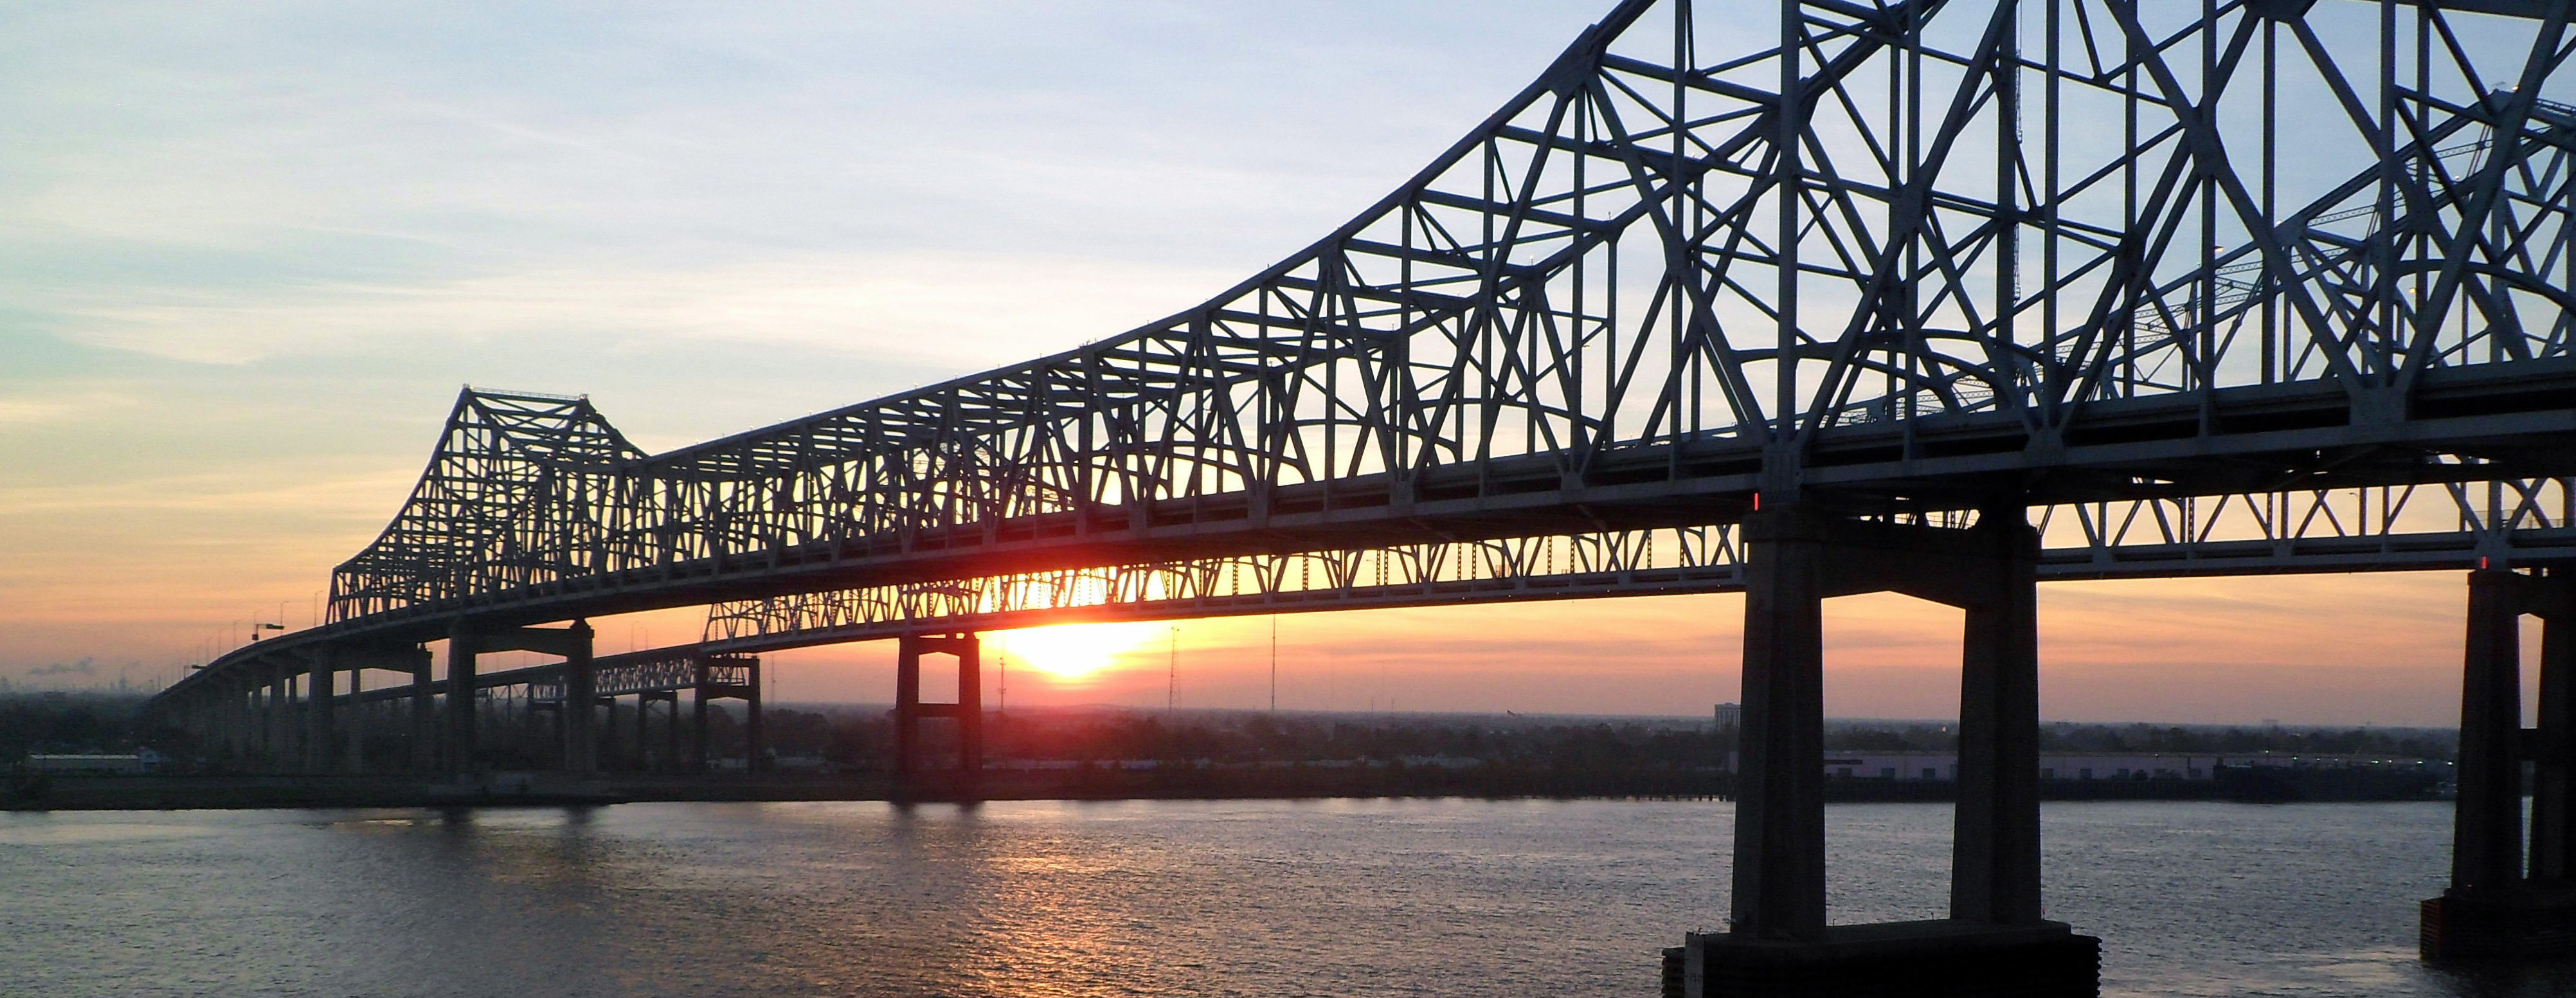 Bridge over the Mississippi River during sunset